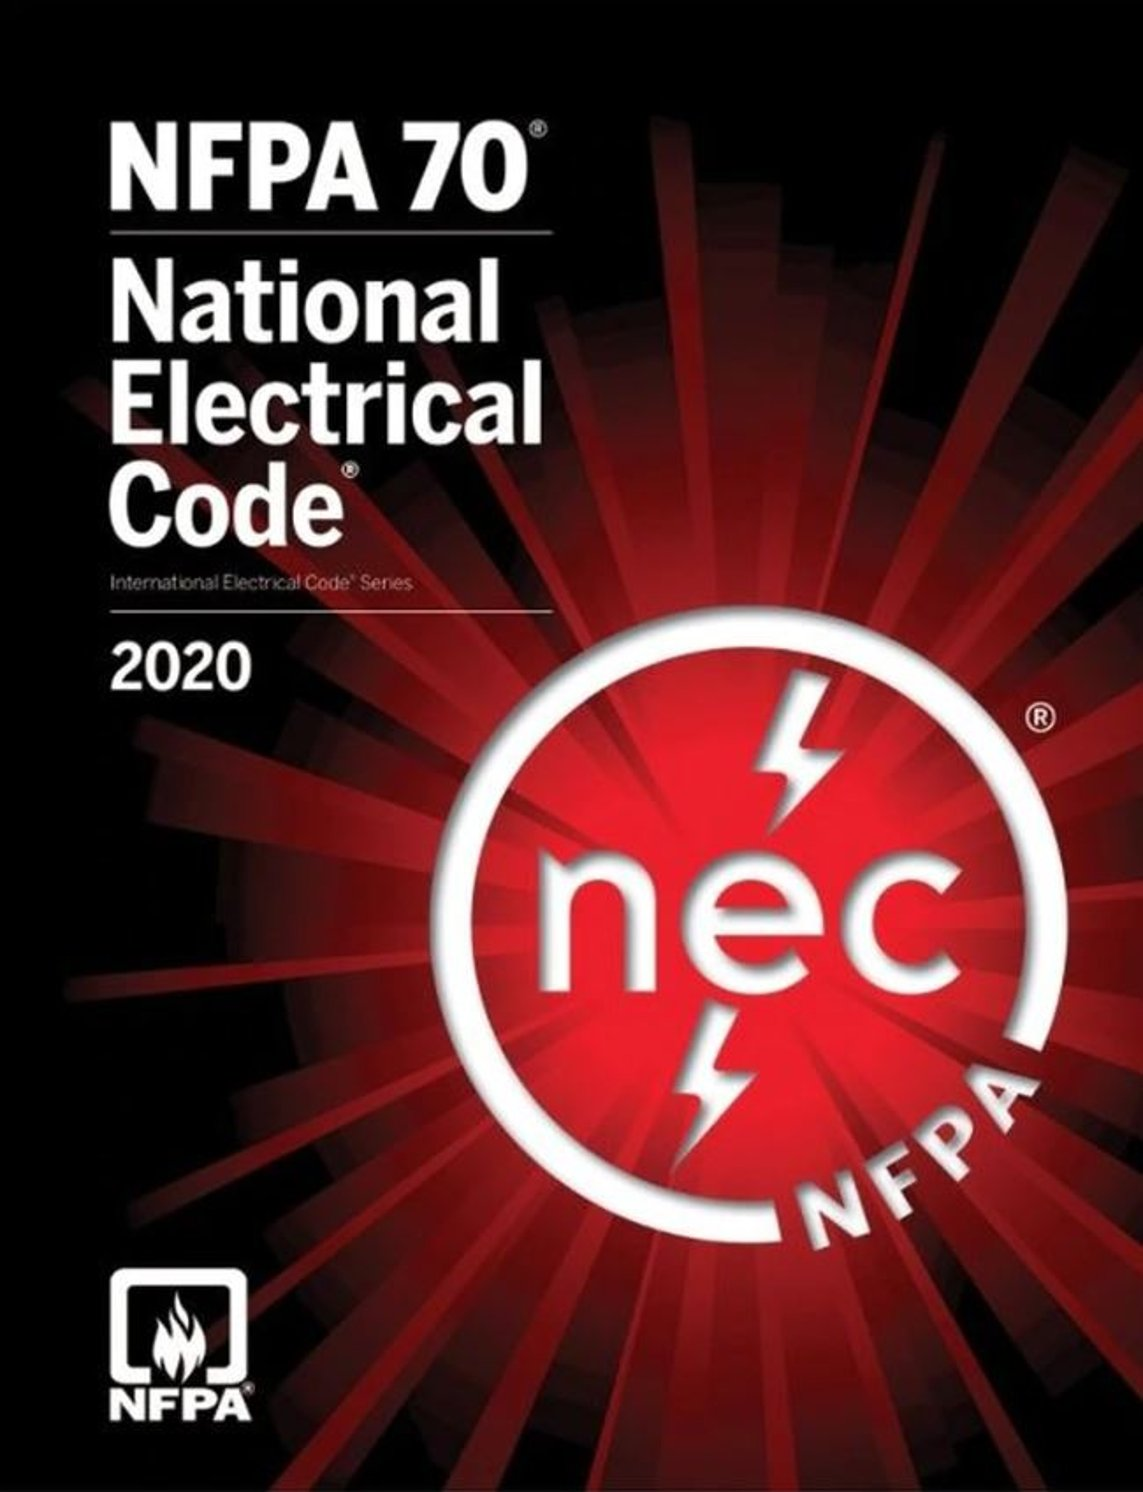 NFPA 70: National Electrical Code 2020